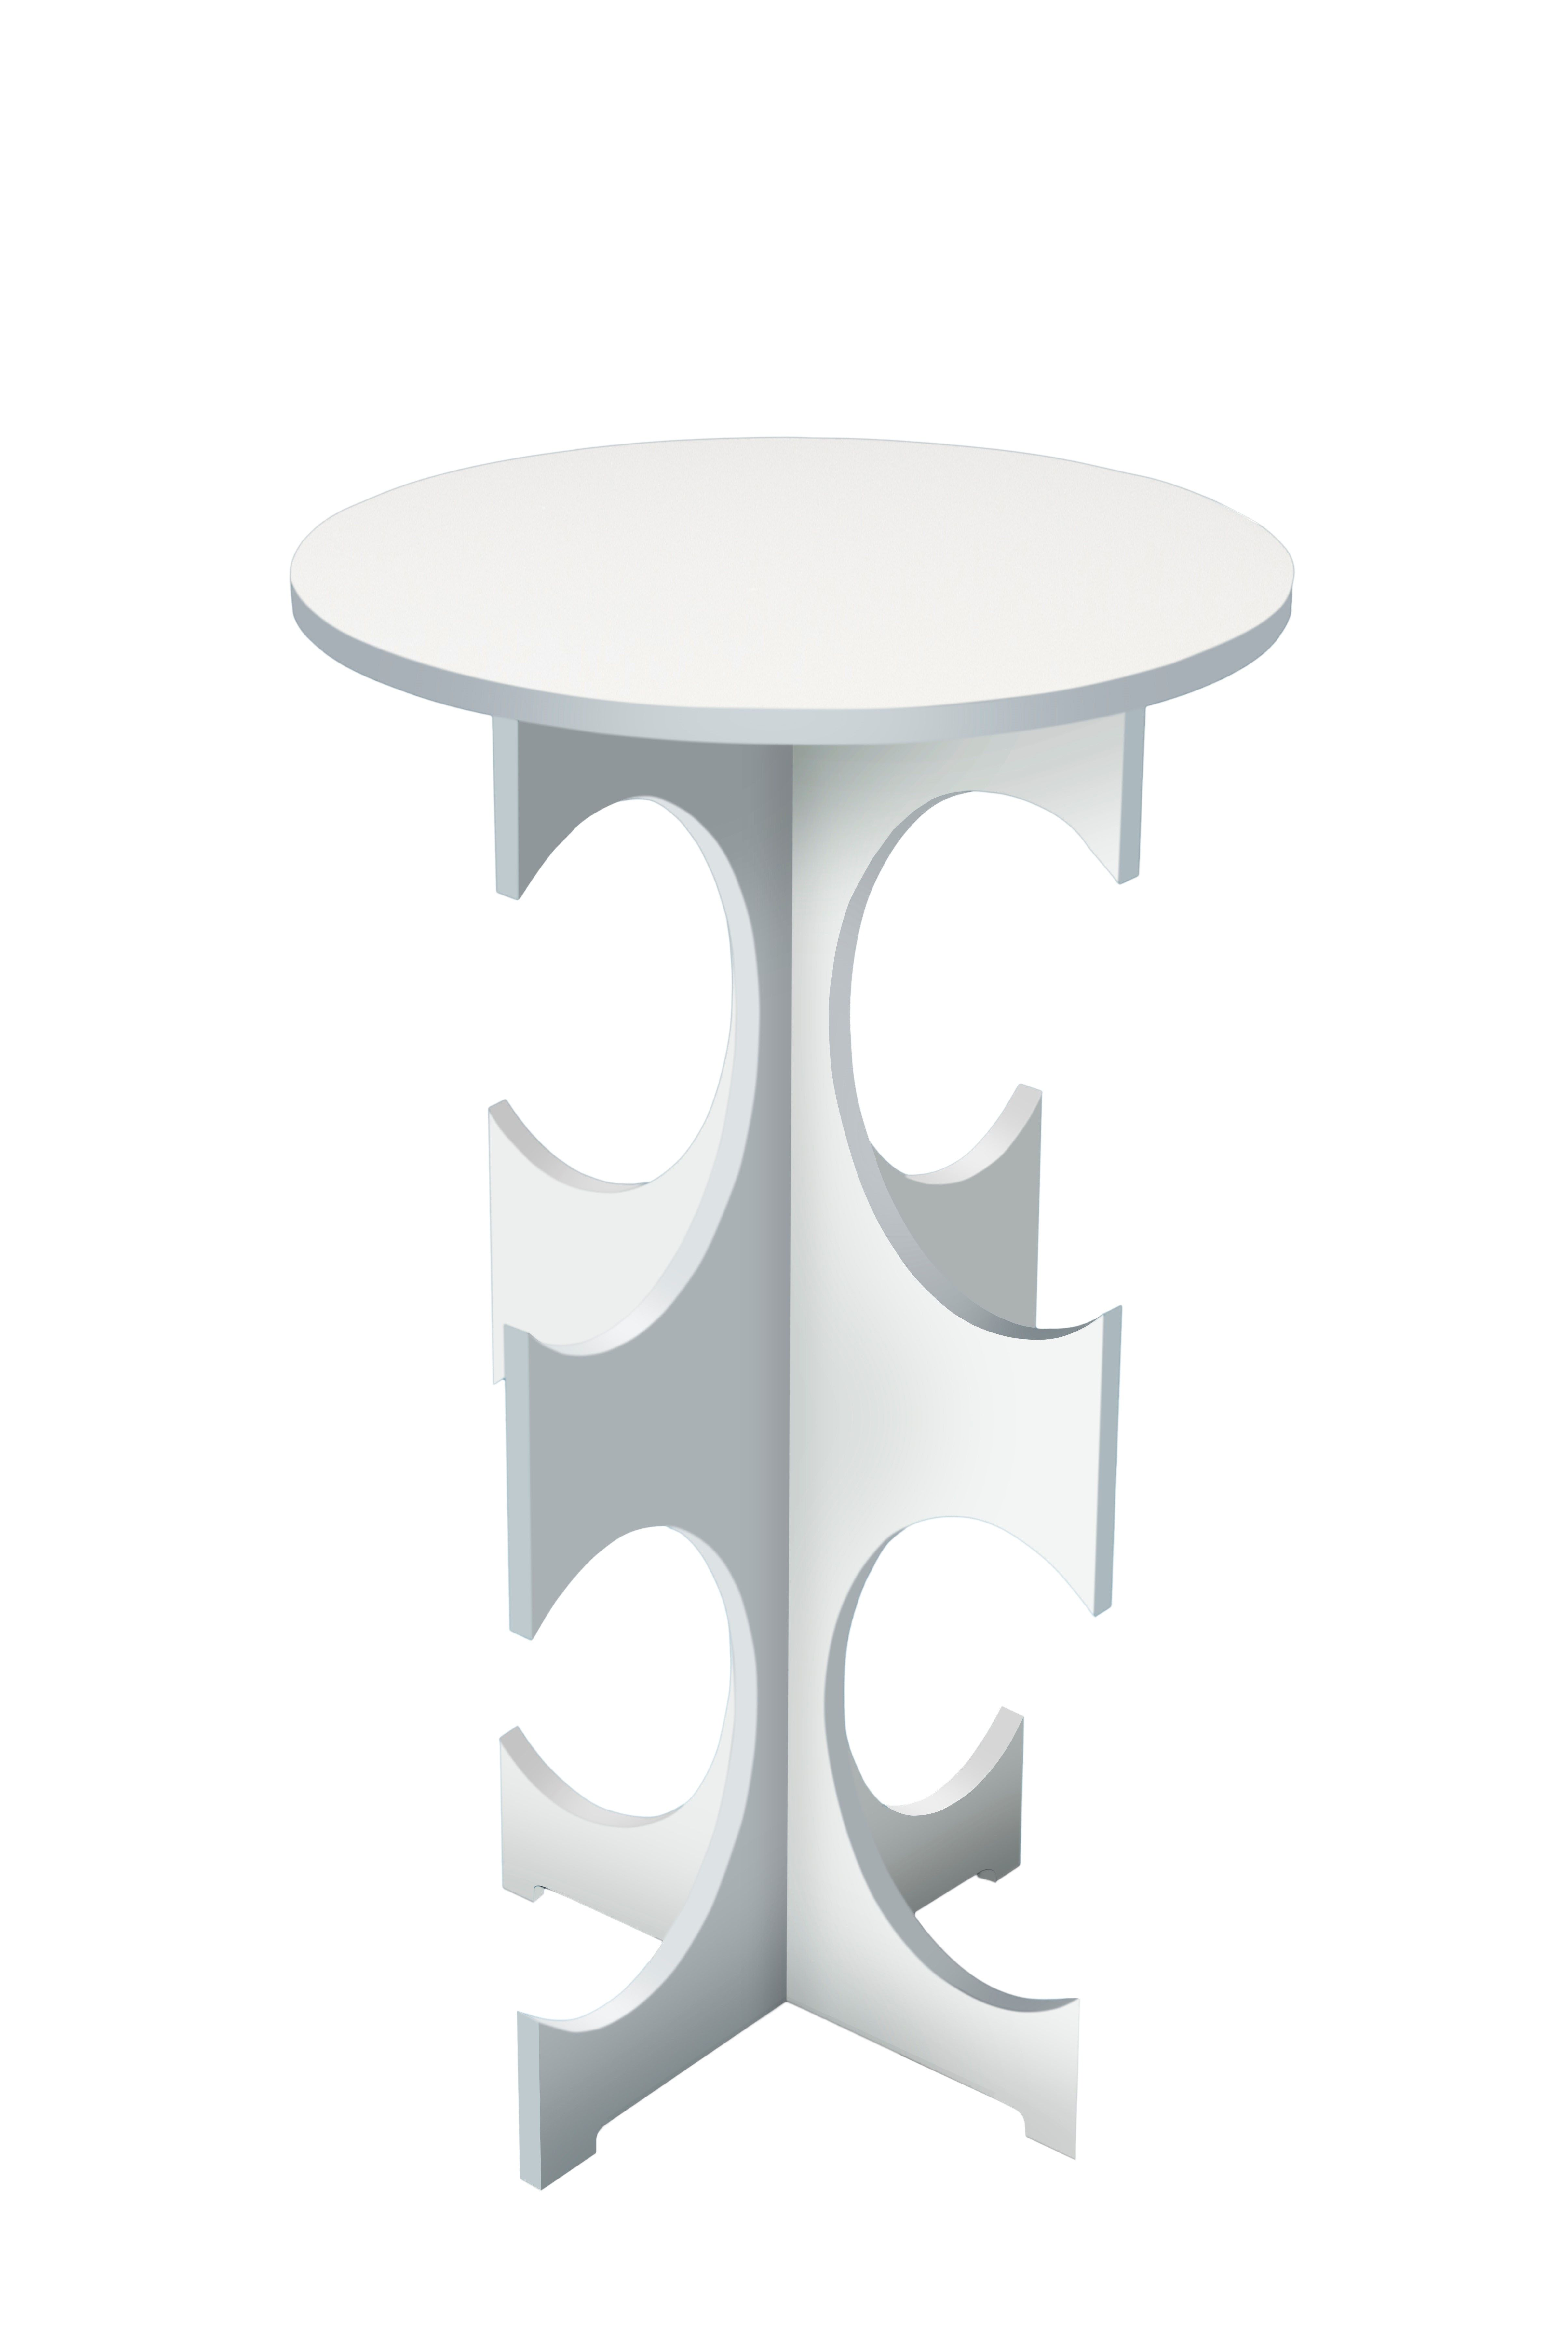 clearly classic amara side table in white by white webb on exclusive modern nesting end tables design ideas very functional furnishings id=33047